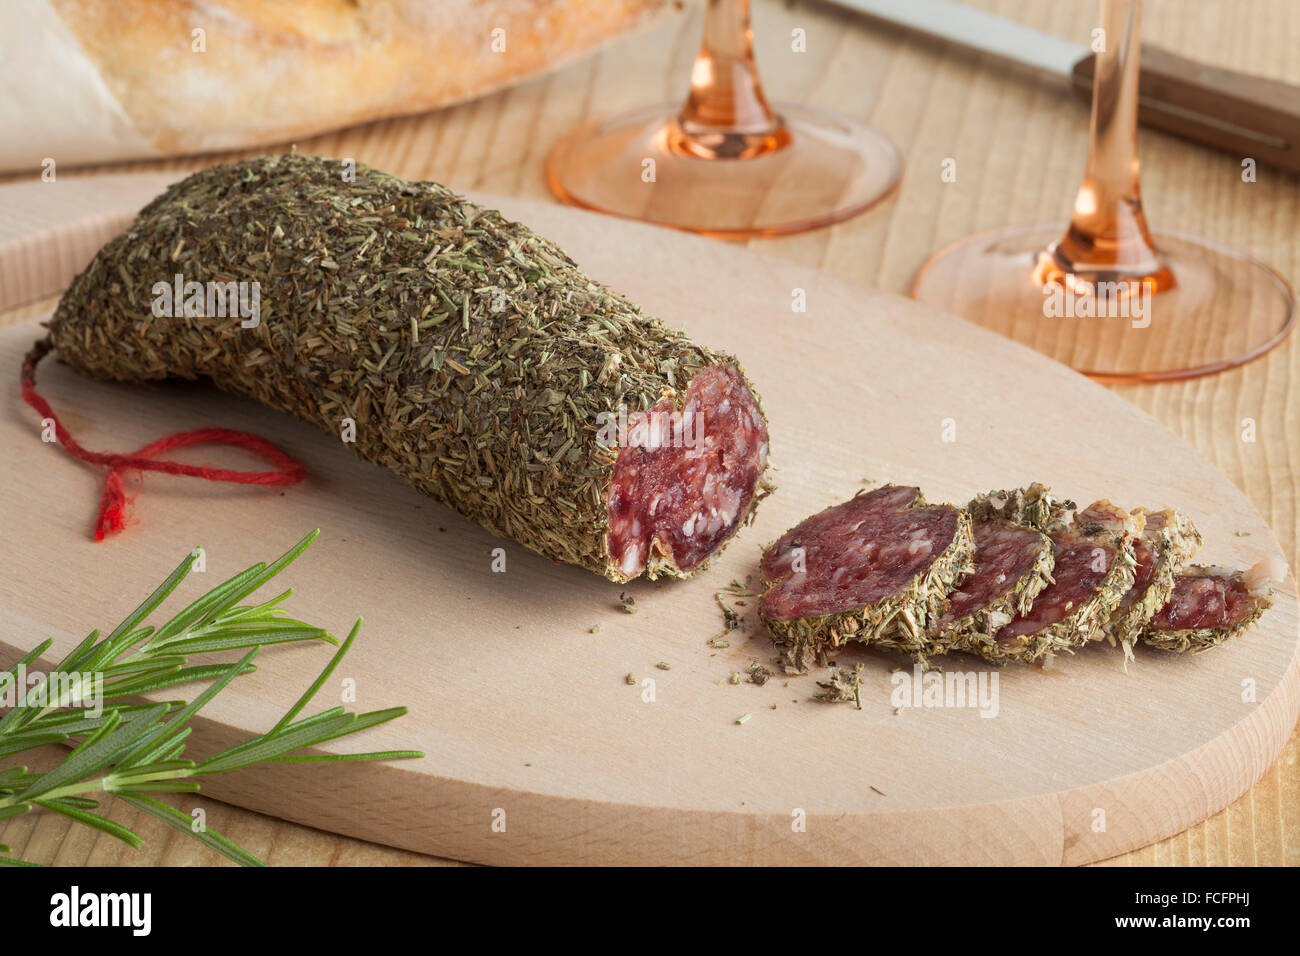 French sausage covered with dried rosemary - Stock Image